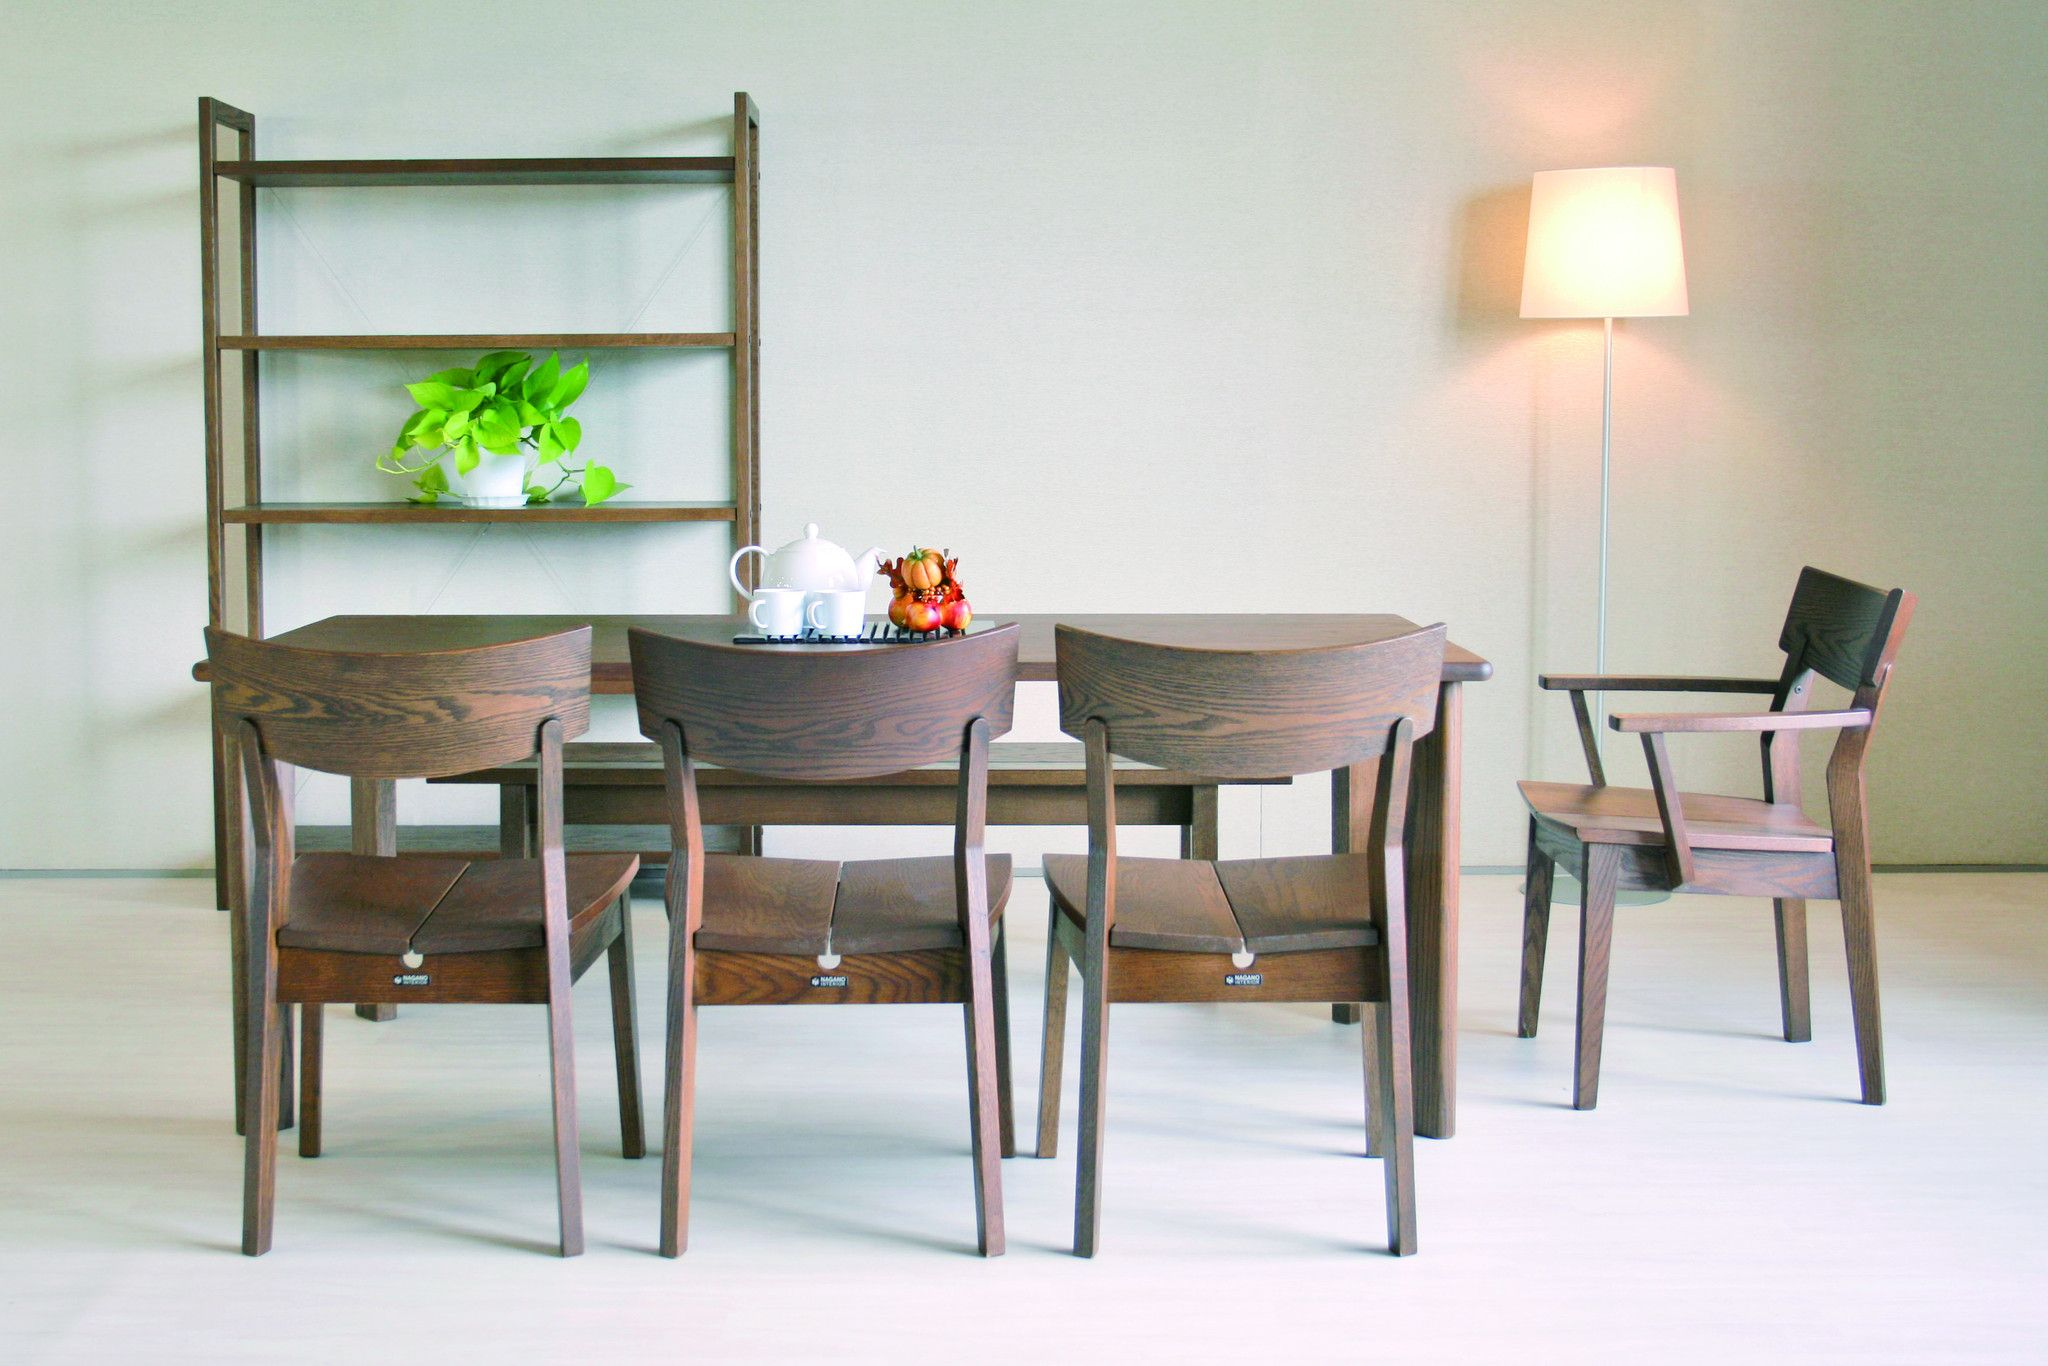 Nagano Interior - LinX Dining Table DT600 - Dining Table